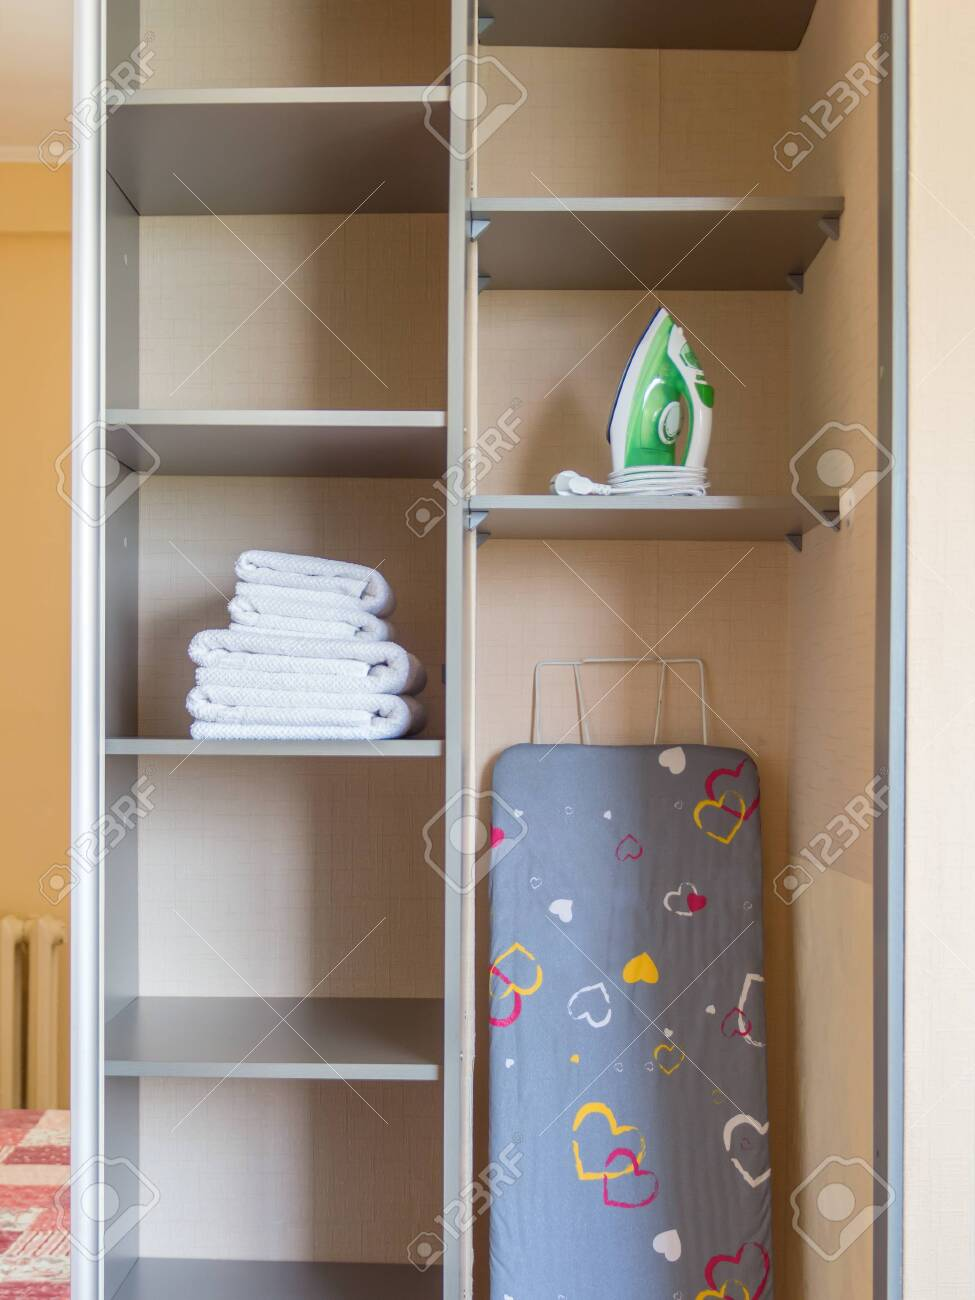 Ironing board, iron, clean towels at closet - 144347315